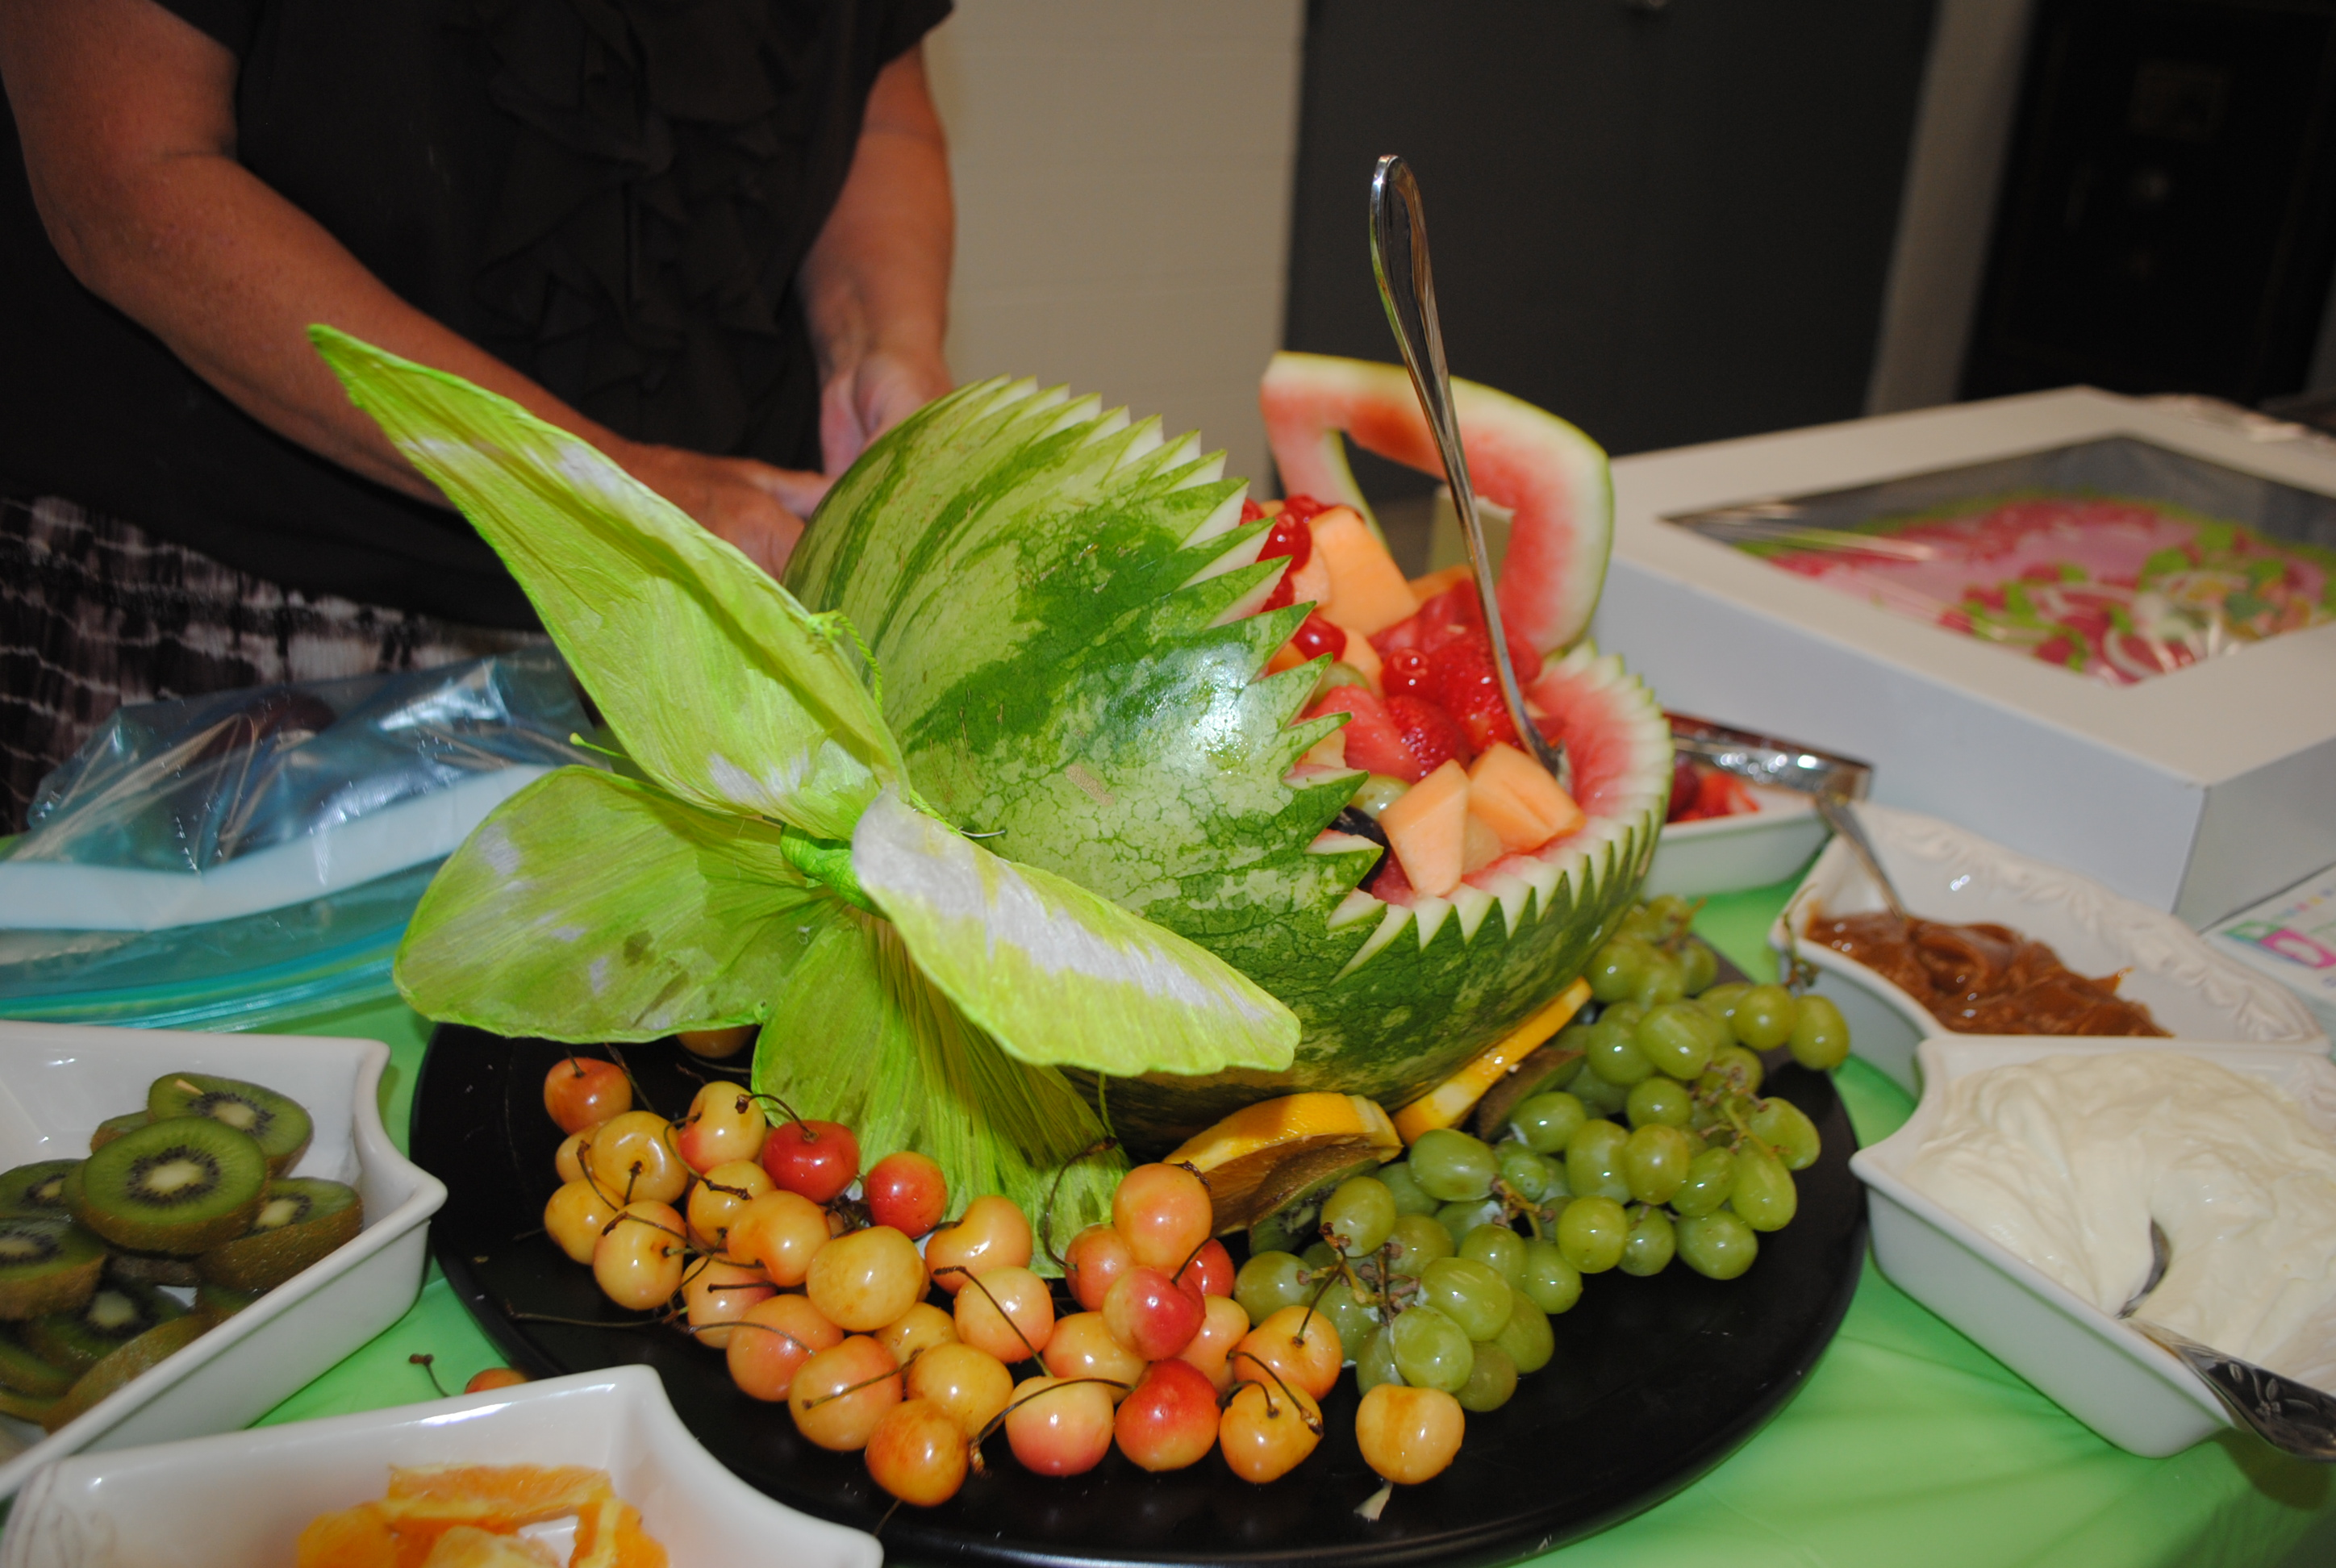 Baby Shower Carving Watermelon Basket Carving Watermelon Into